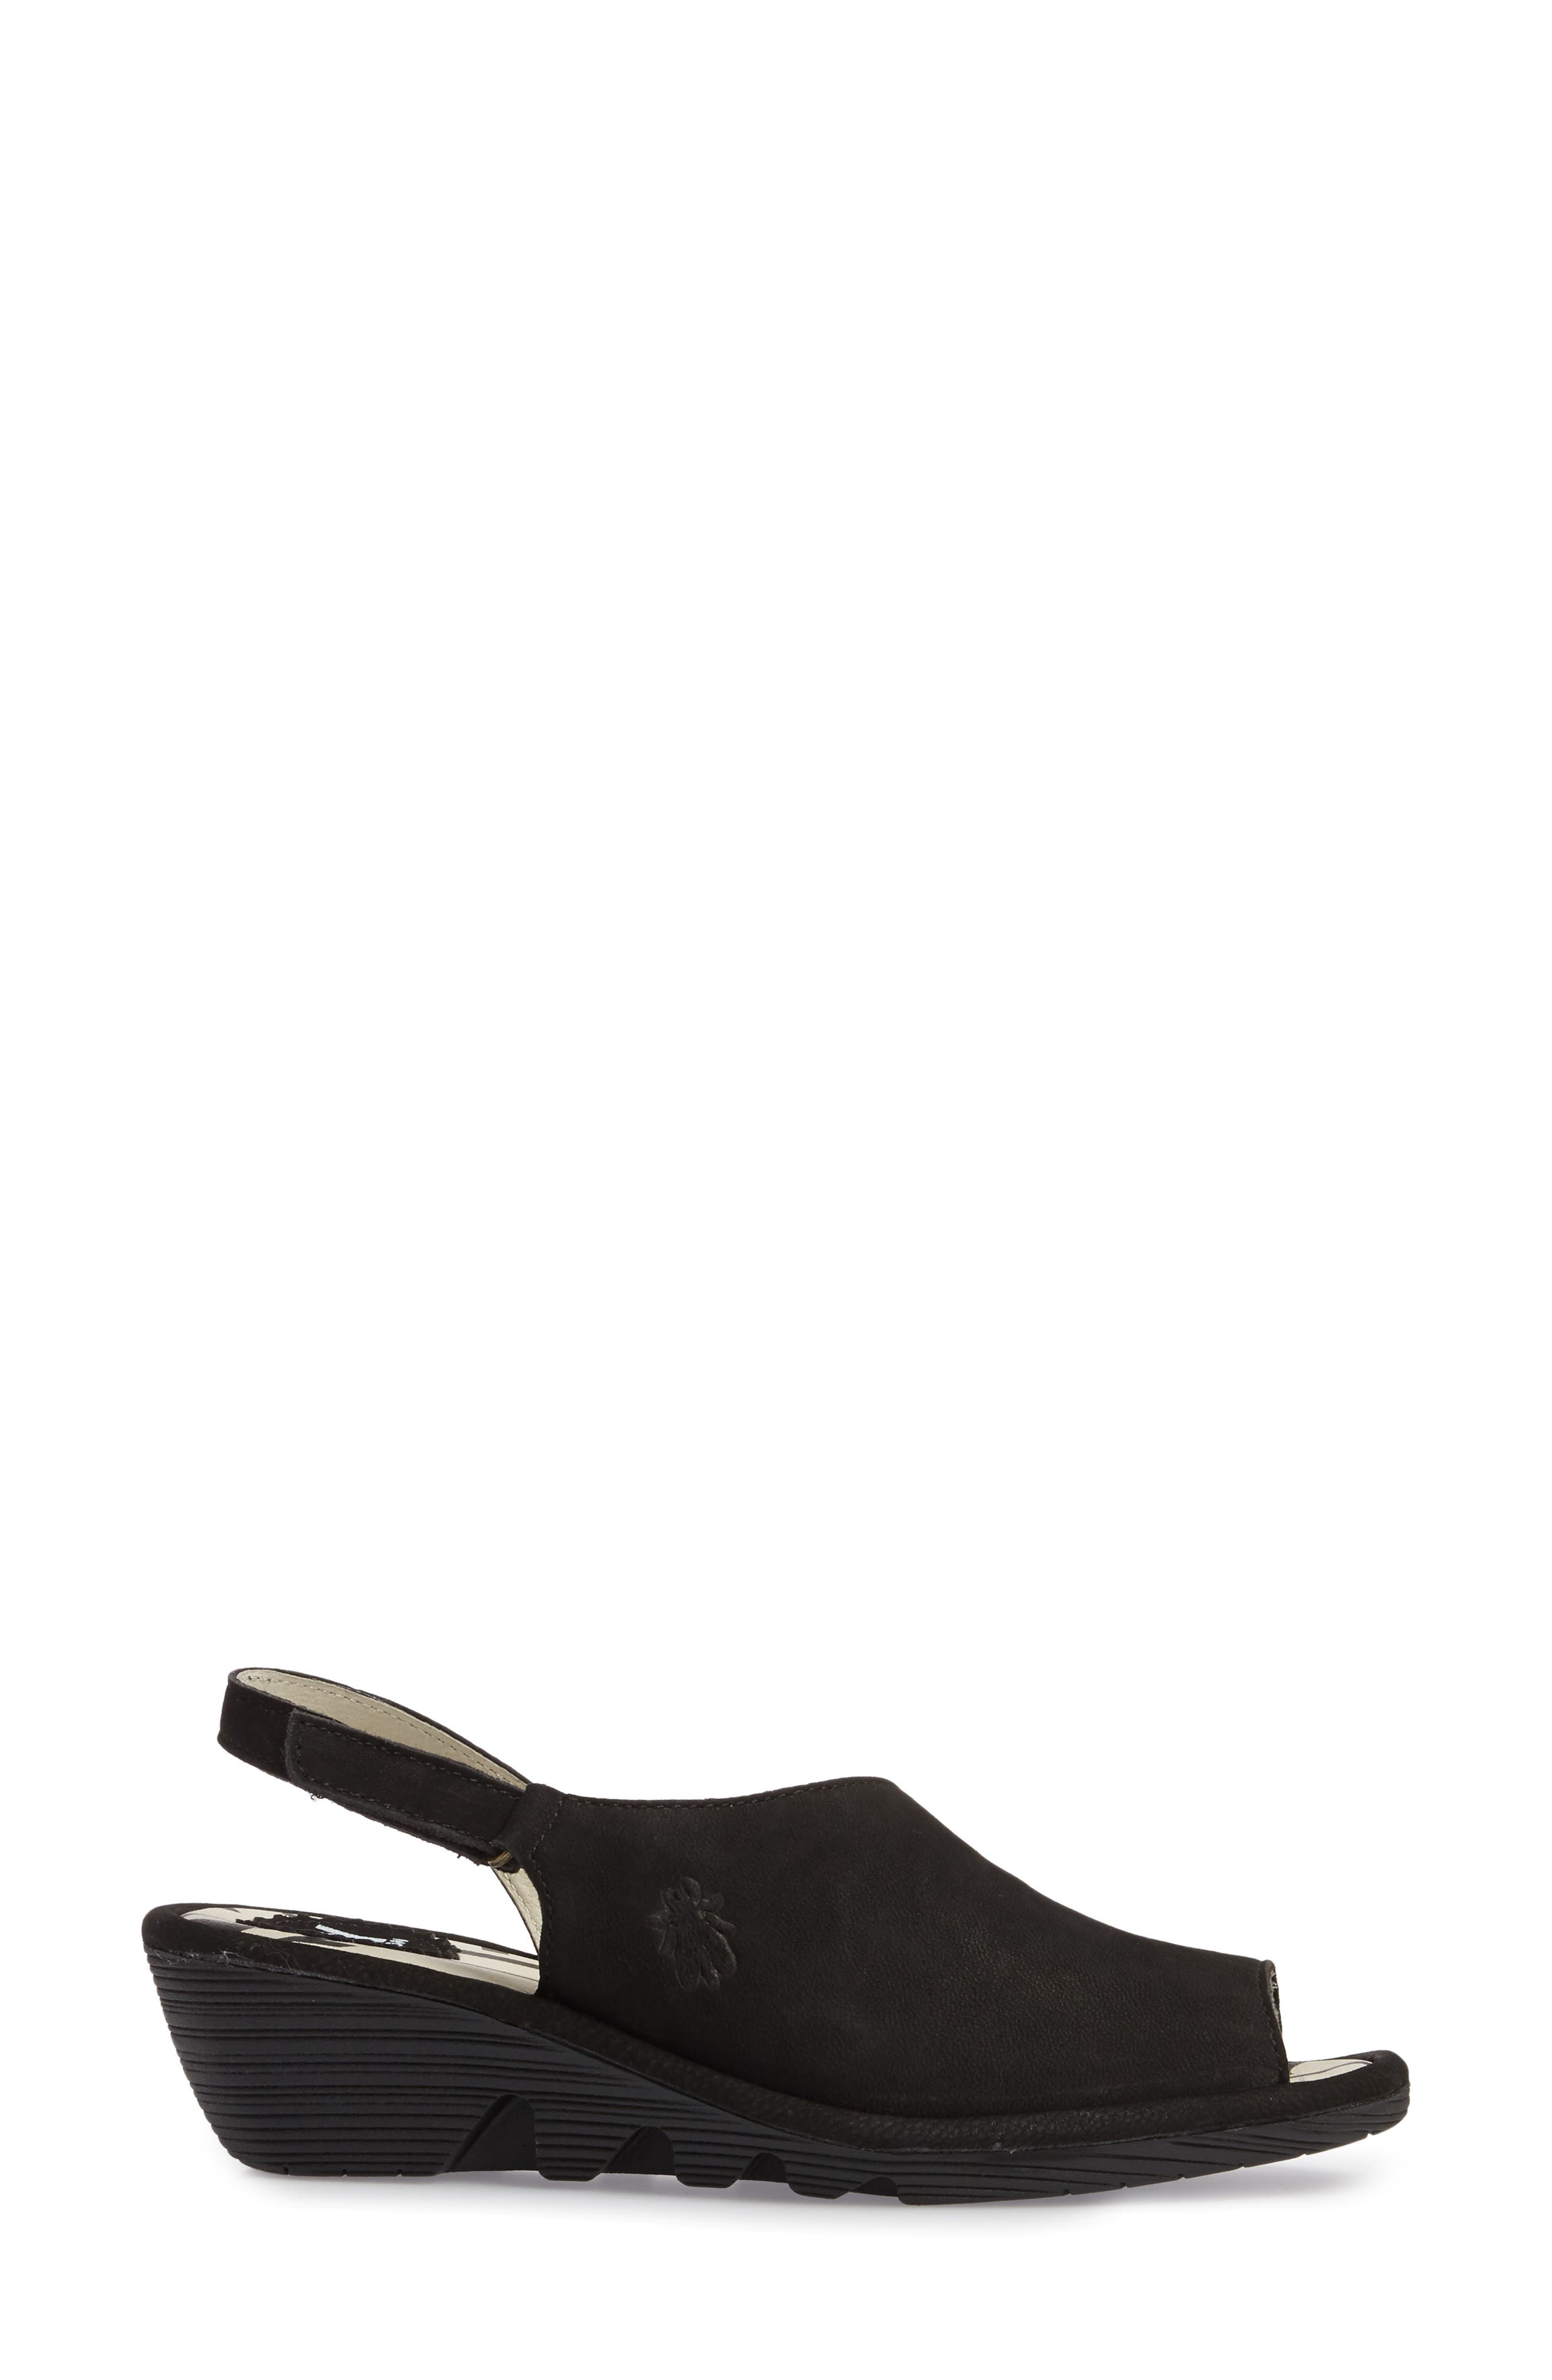 Palp Wedge Sandal,                             Alternate thumbnail 3, color,                             BLACK CUPIDO LEATHER